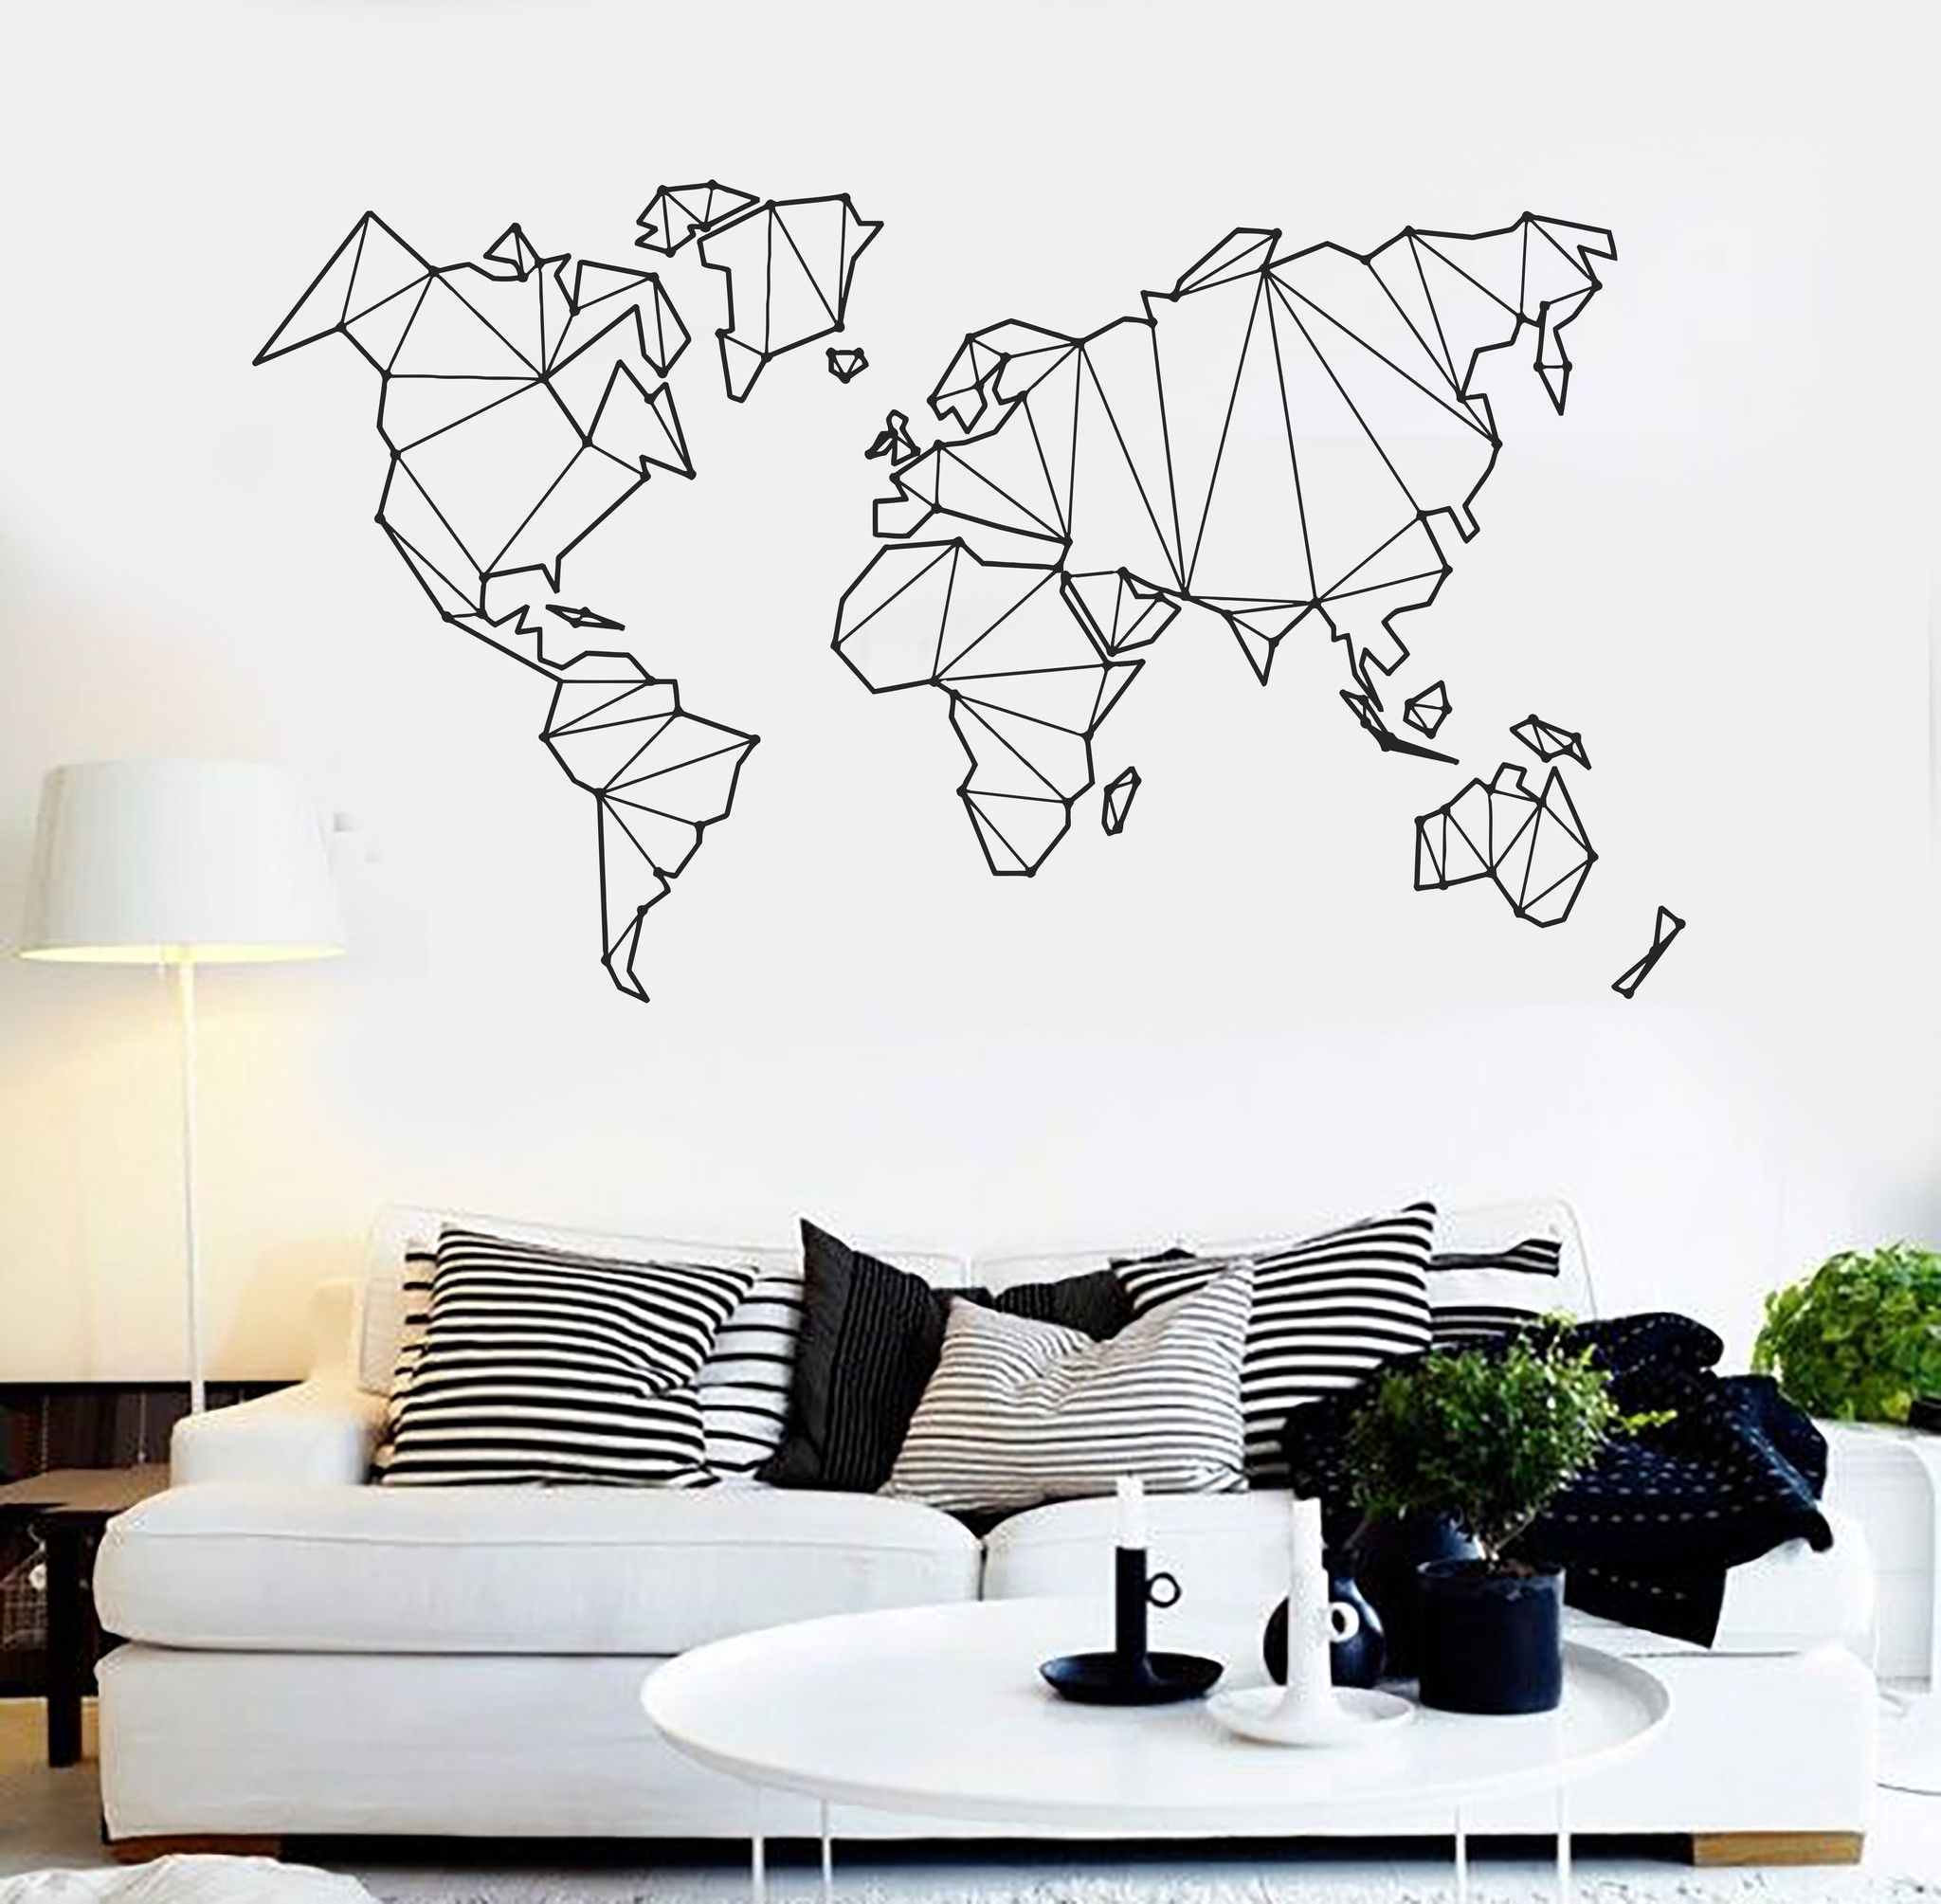 Vinyl Wall Decal Abstract Map World Geography Earth Stickers Throughout Most Popular Abstract Art Wall Decal (Gallery 19 of 20)